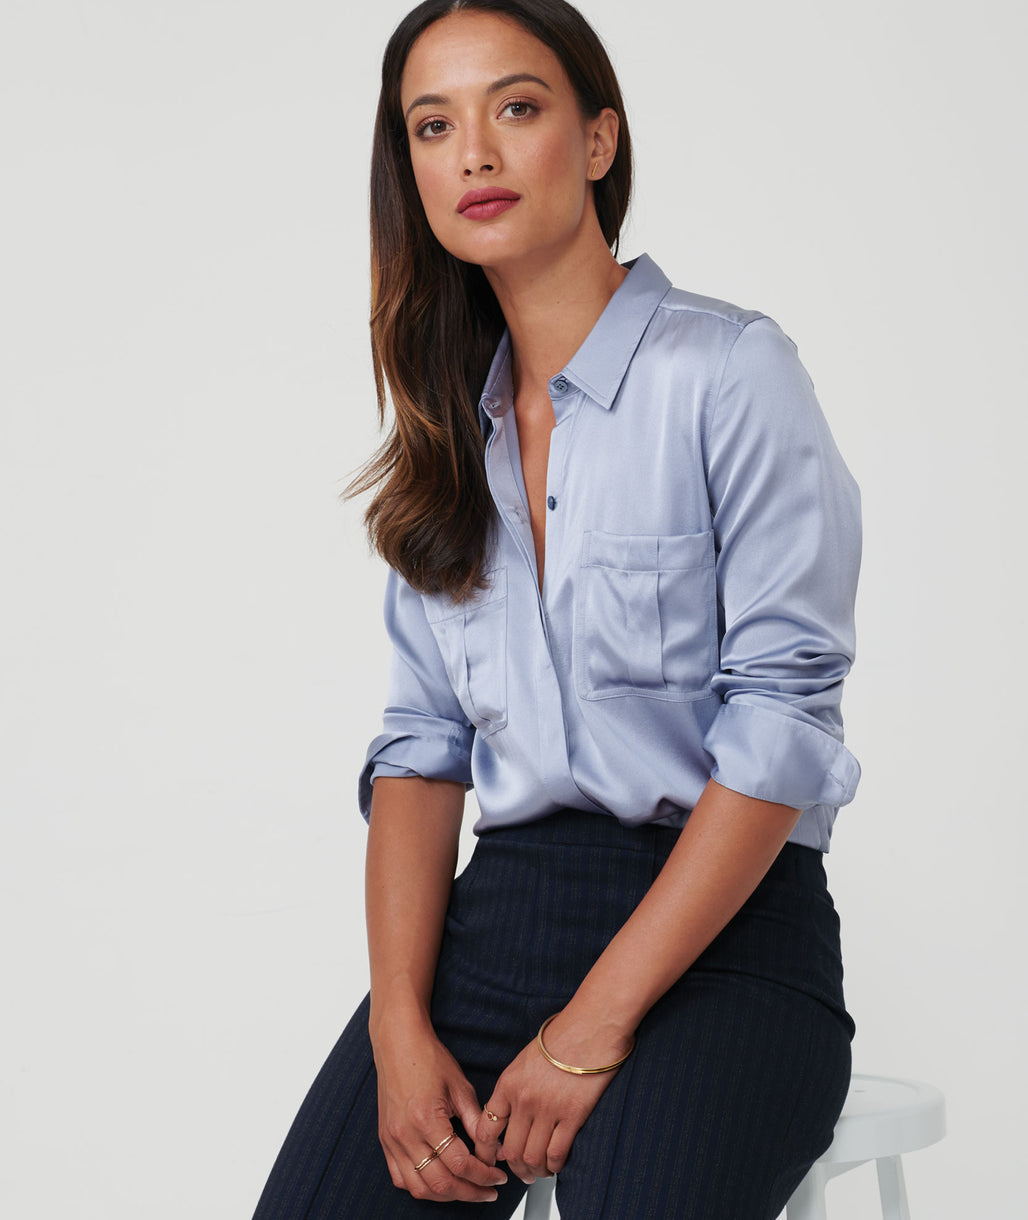 Model wearing a Light Blue carlina shirt